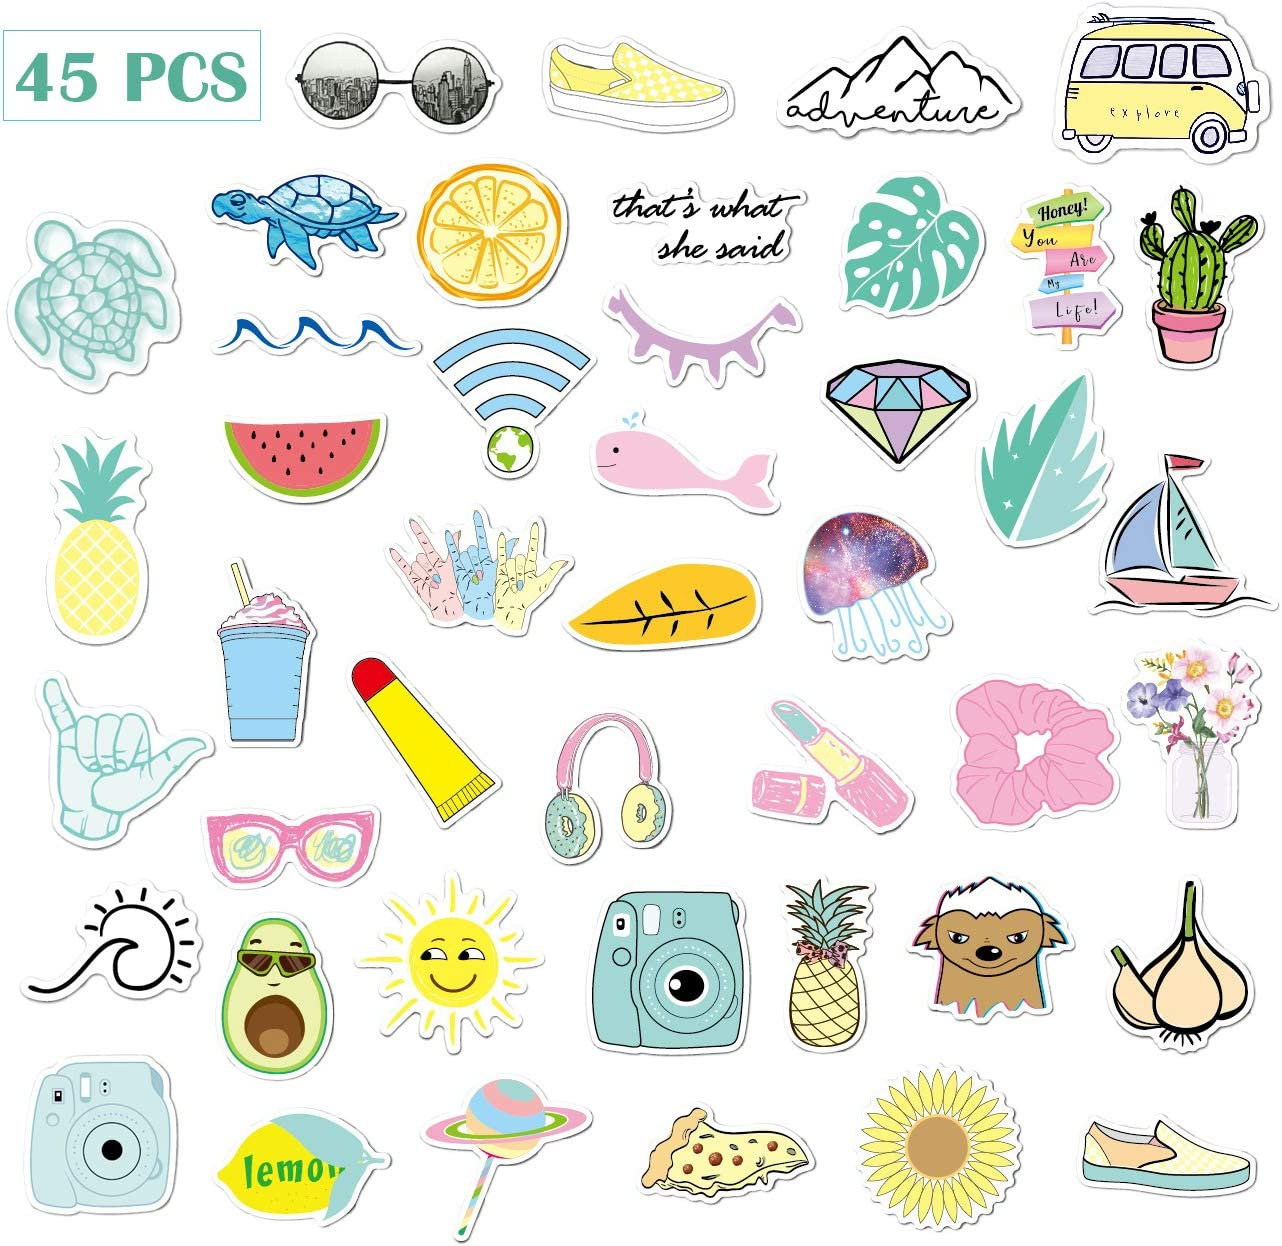 AnvFlik Stickers for Kids 45 Different Colorful Stickers for Water Bottles, Vsco Stickers Laptop Stickers Pack Cute Aesthetics Stickers for Boys Girls Teens Girls,45 PCS